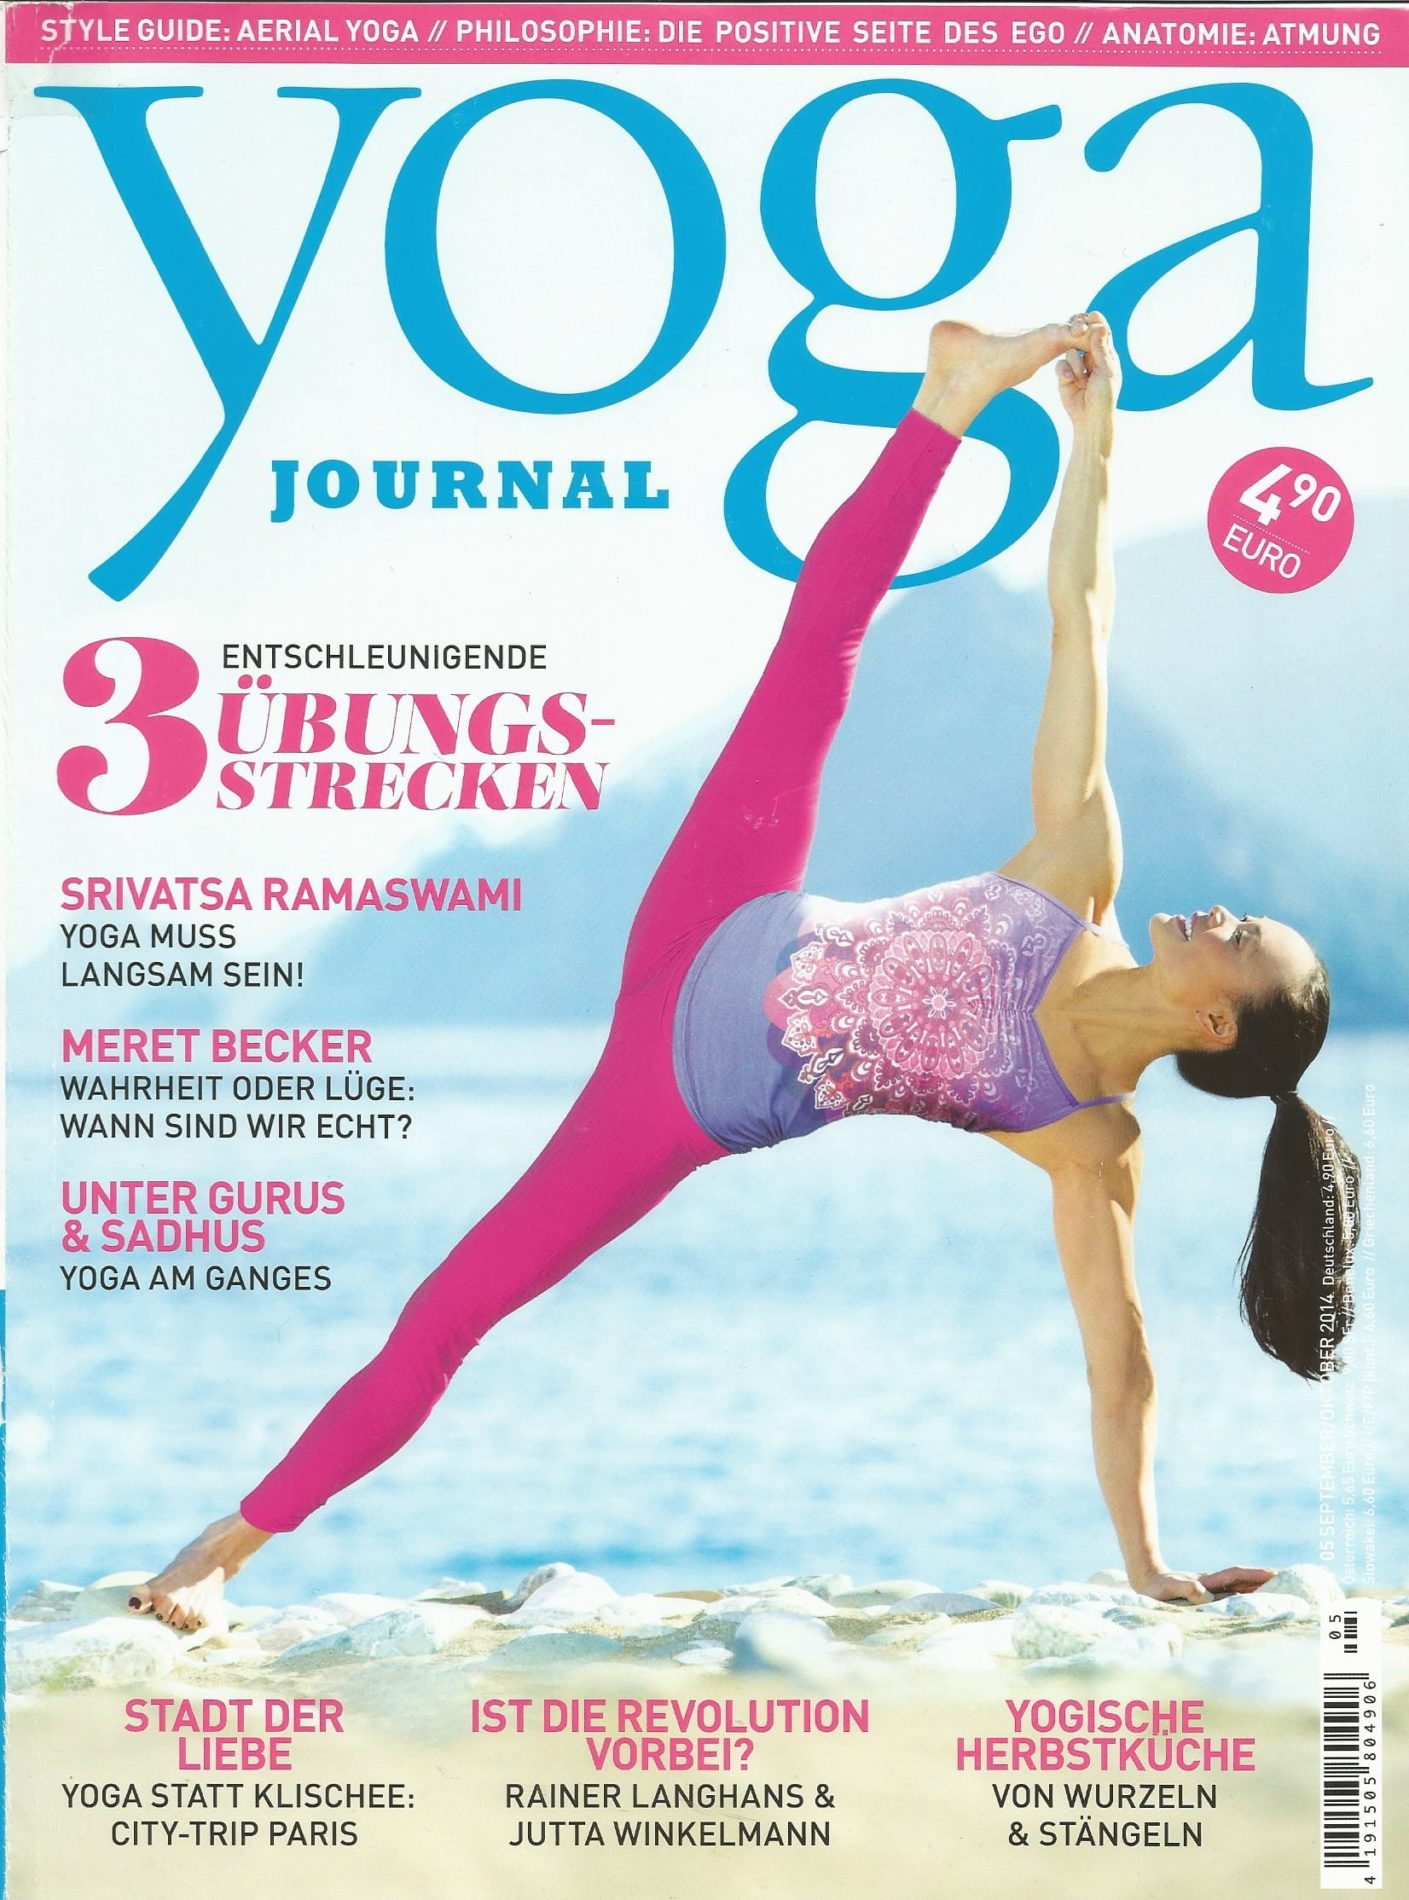 Yoga Journal – CD review